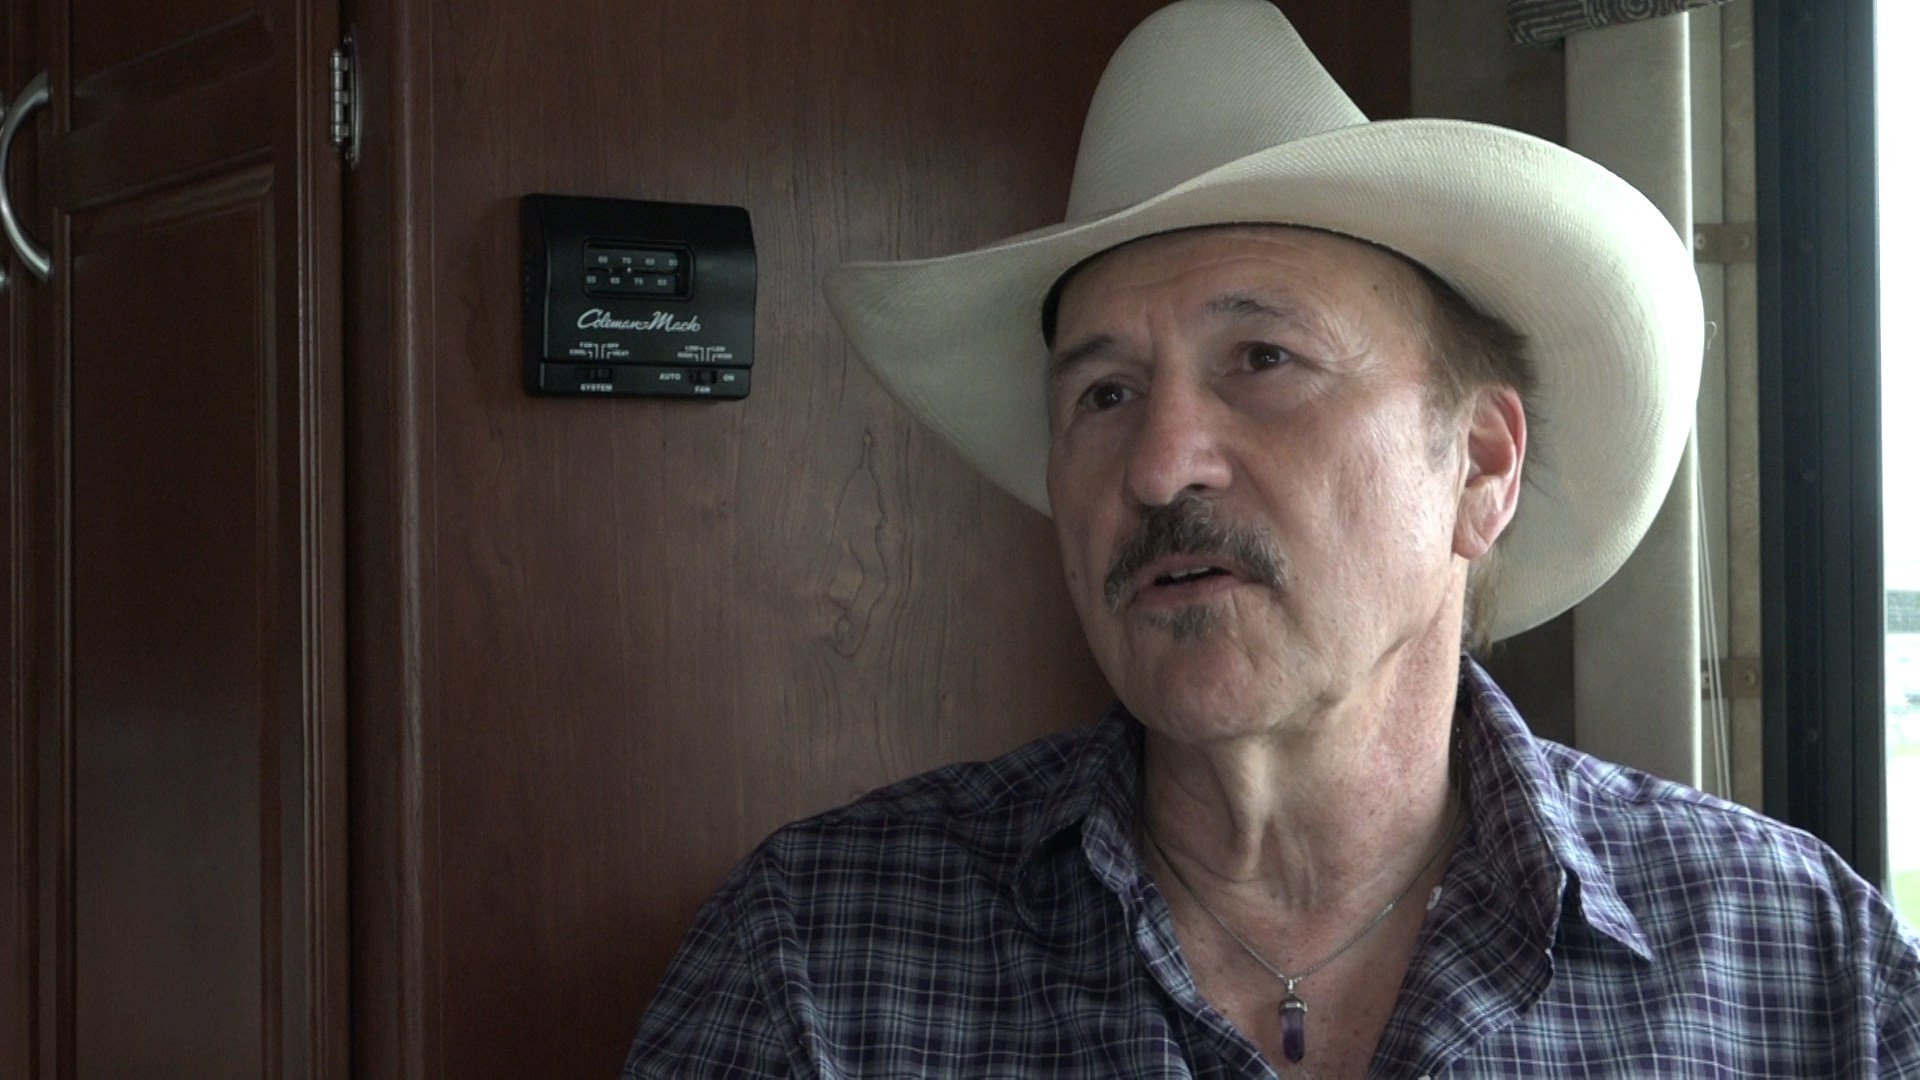 Democratic U.S. House candidate Rob Quist